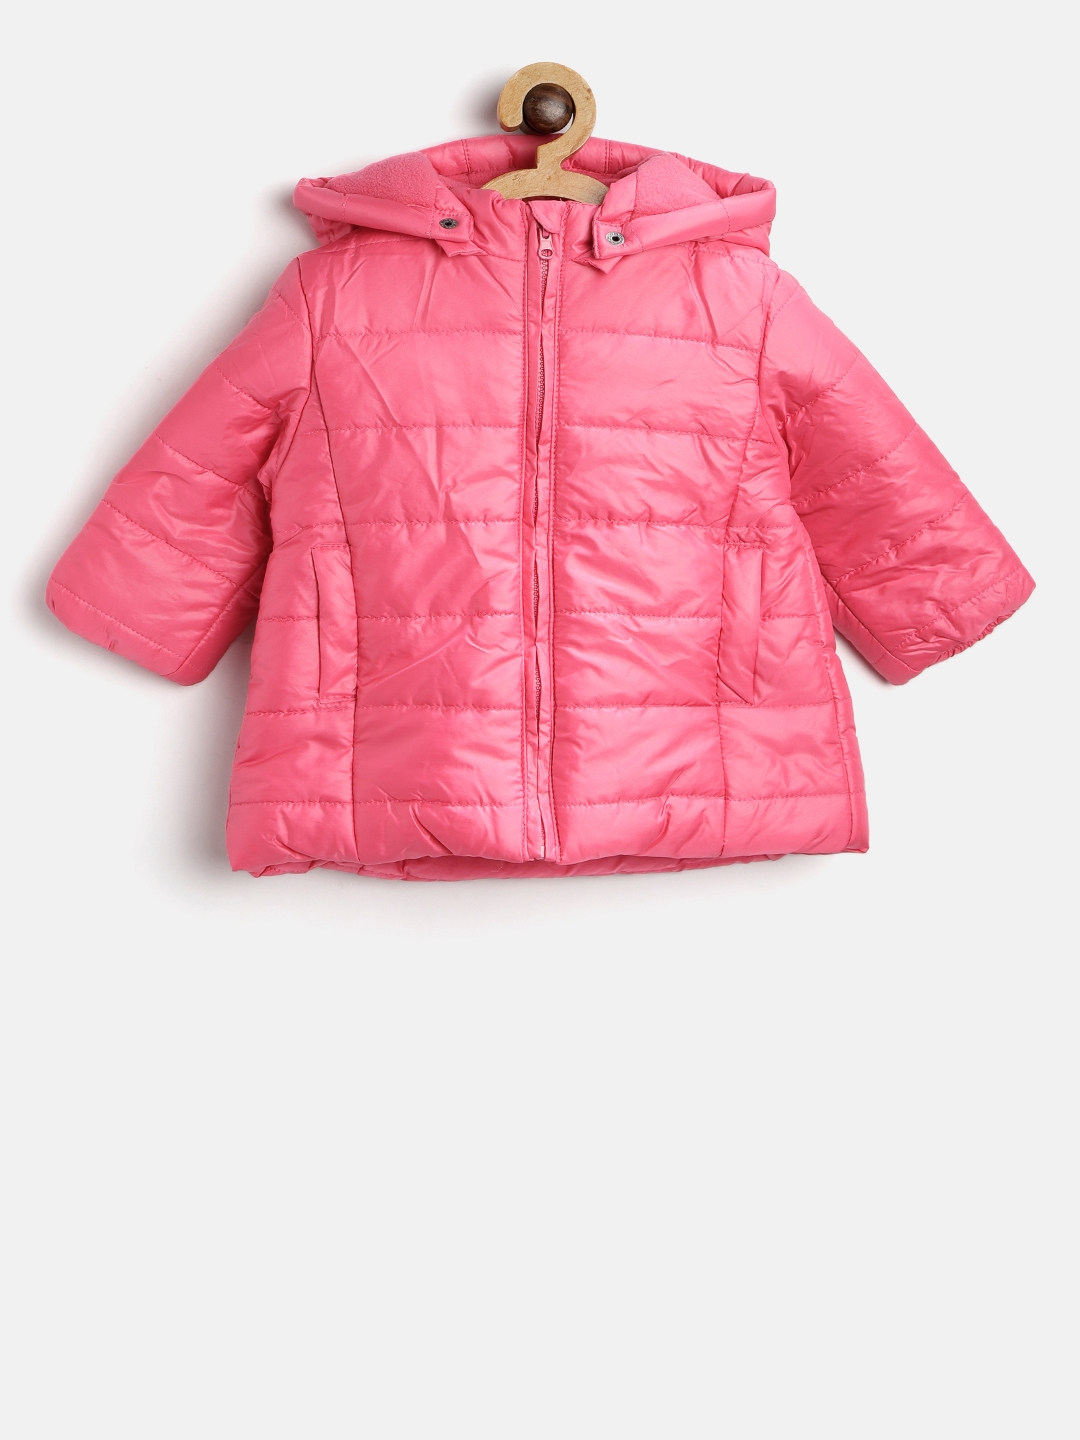 99a4f3fd0 Buy Losan Girls Pink Solid Hooded Puffer Jacket - Jackets for Girls ...